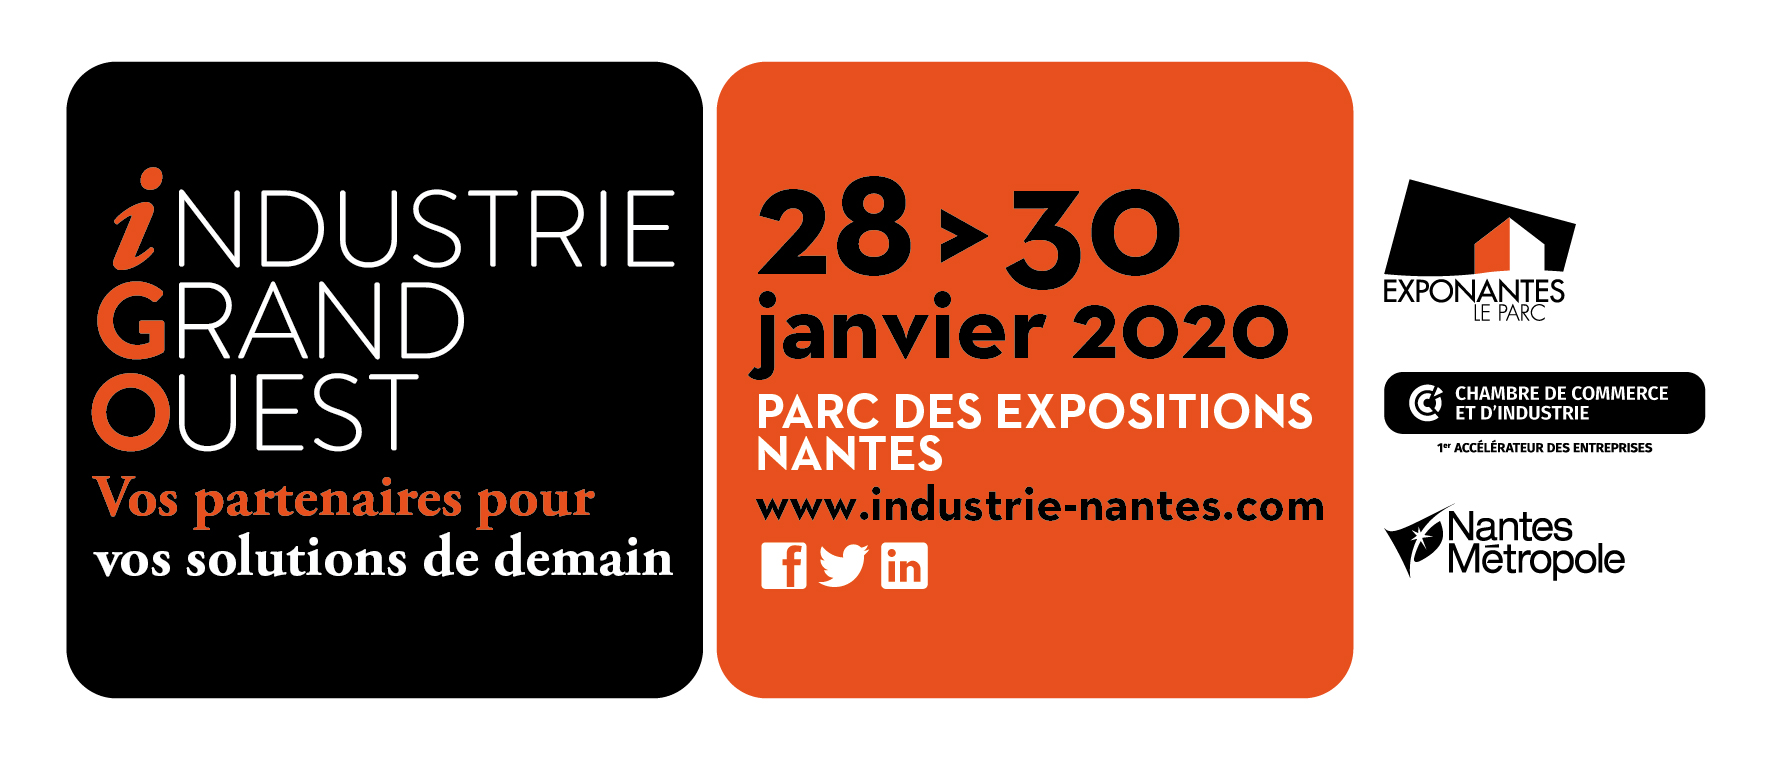 Industrie Grand Ouest Nantes 2020